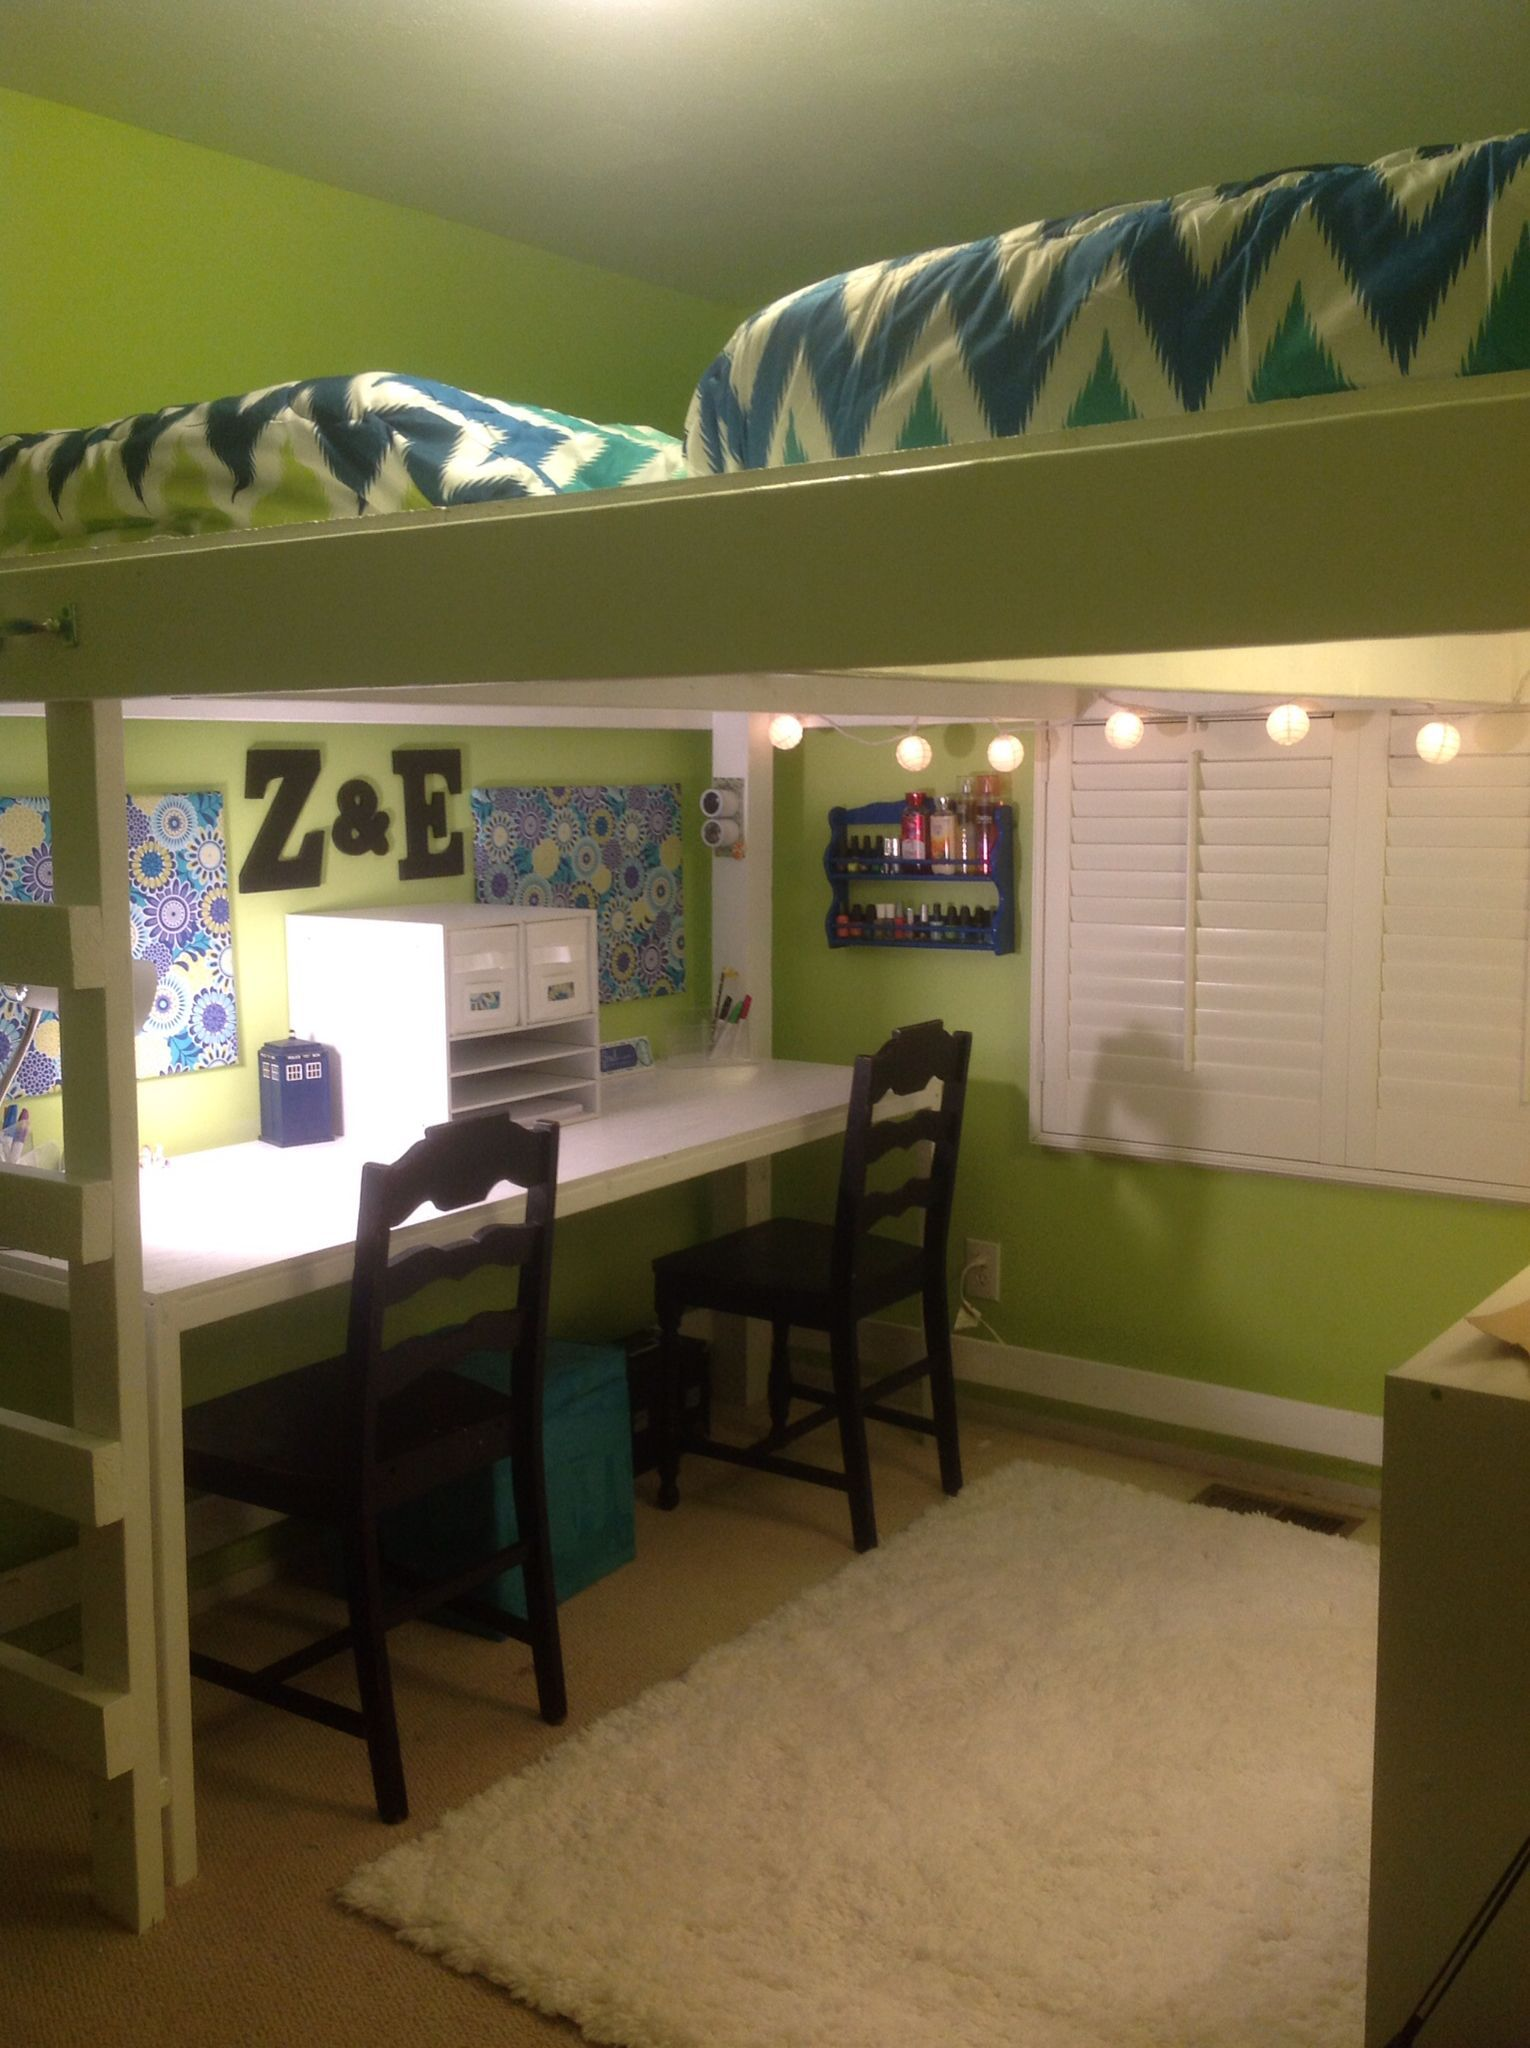 Finished Product Double Loft Platform With Built In Desk And Vanity Bunk Bed Room Ideas Bunk Bed With Desk Bunk Beds For Boys Room